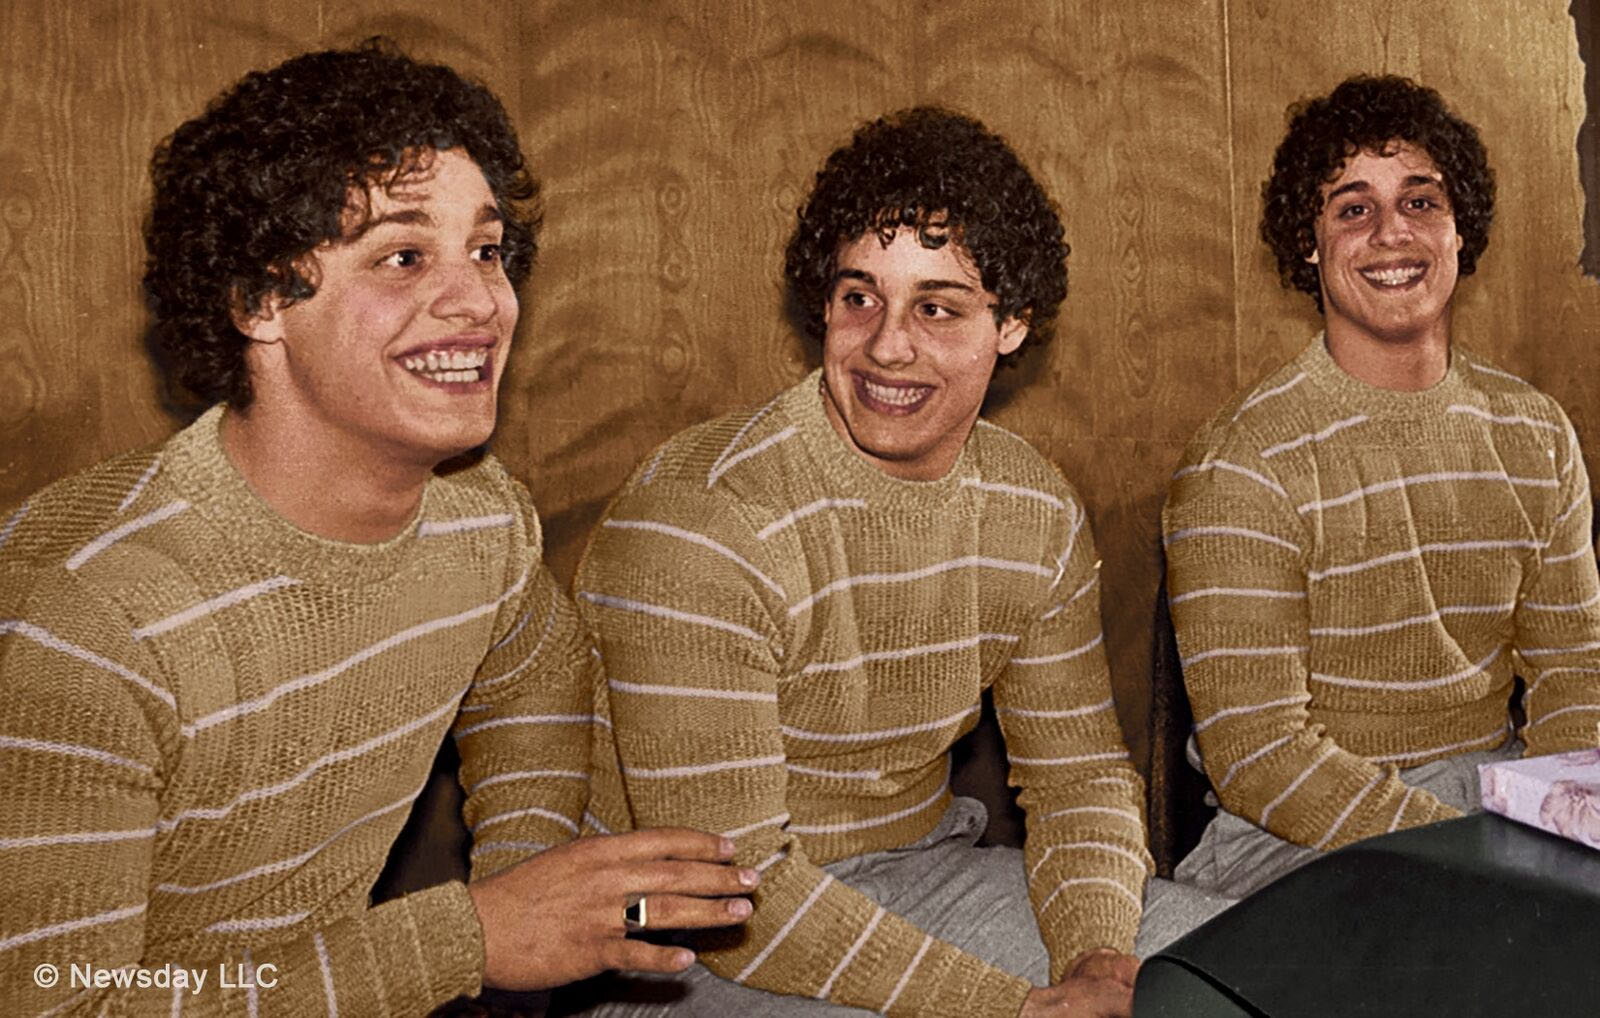 "Triplets Bobby, Eddy and David reunite after 19 years., in the unbelievable story told in ""Three Identical Strangers."" - CNN Films, Neon"